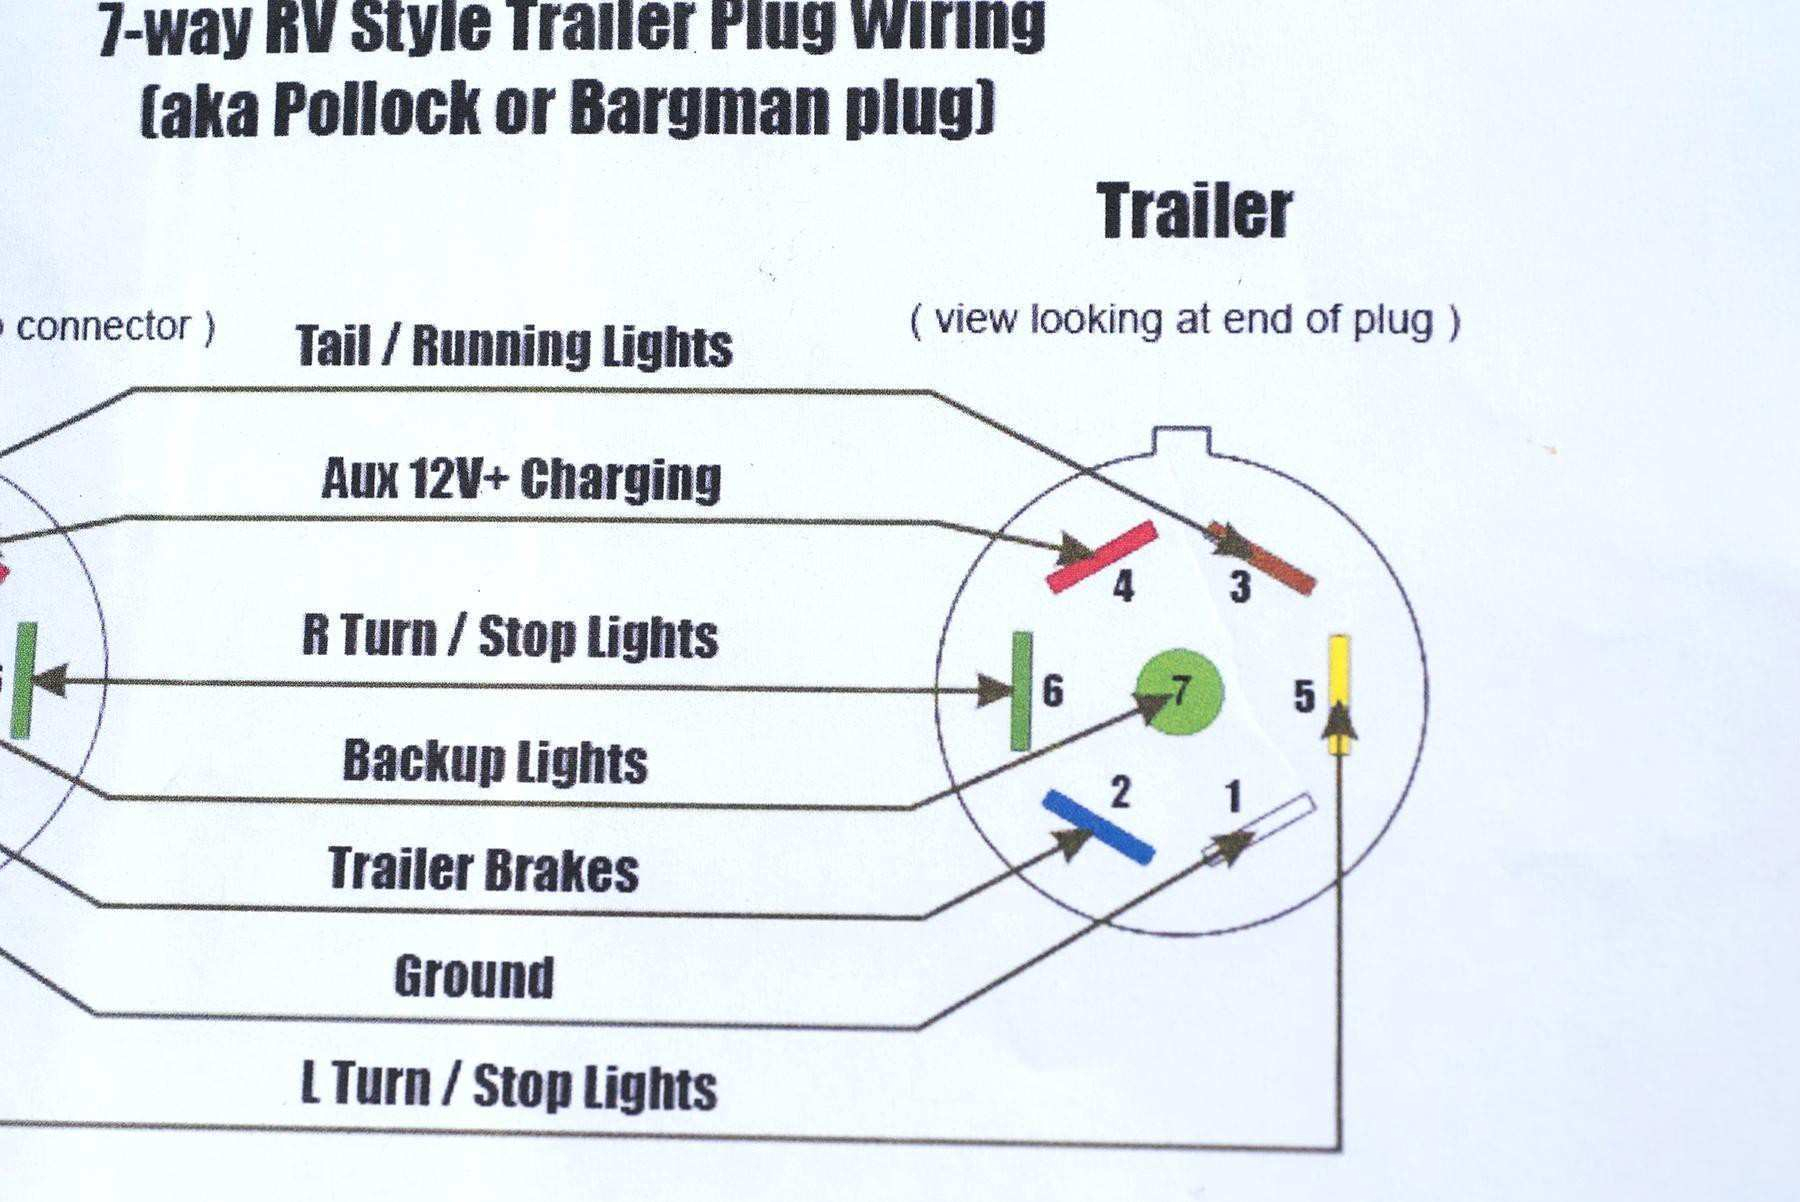 Wire Harness For Trailer Hookup | Wiring Library - Trailer Hookup Wiring Diagram